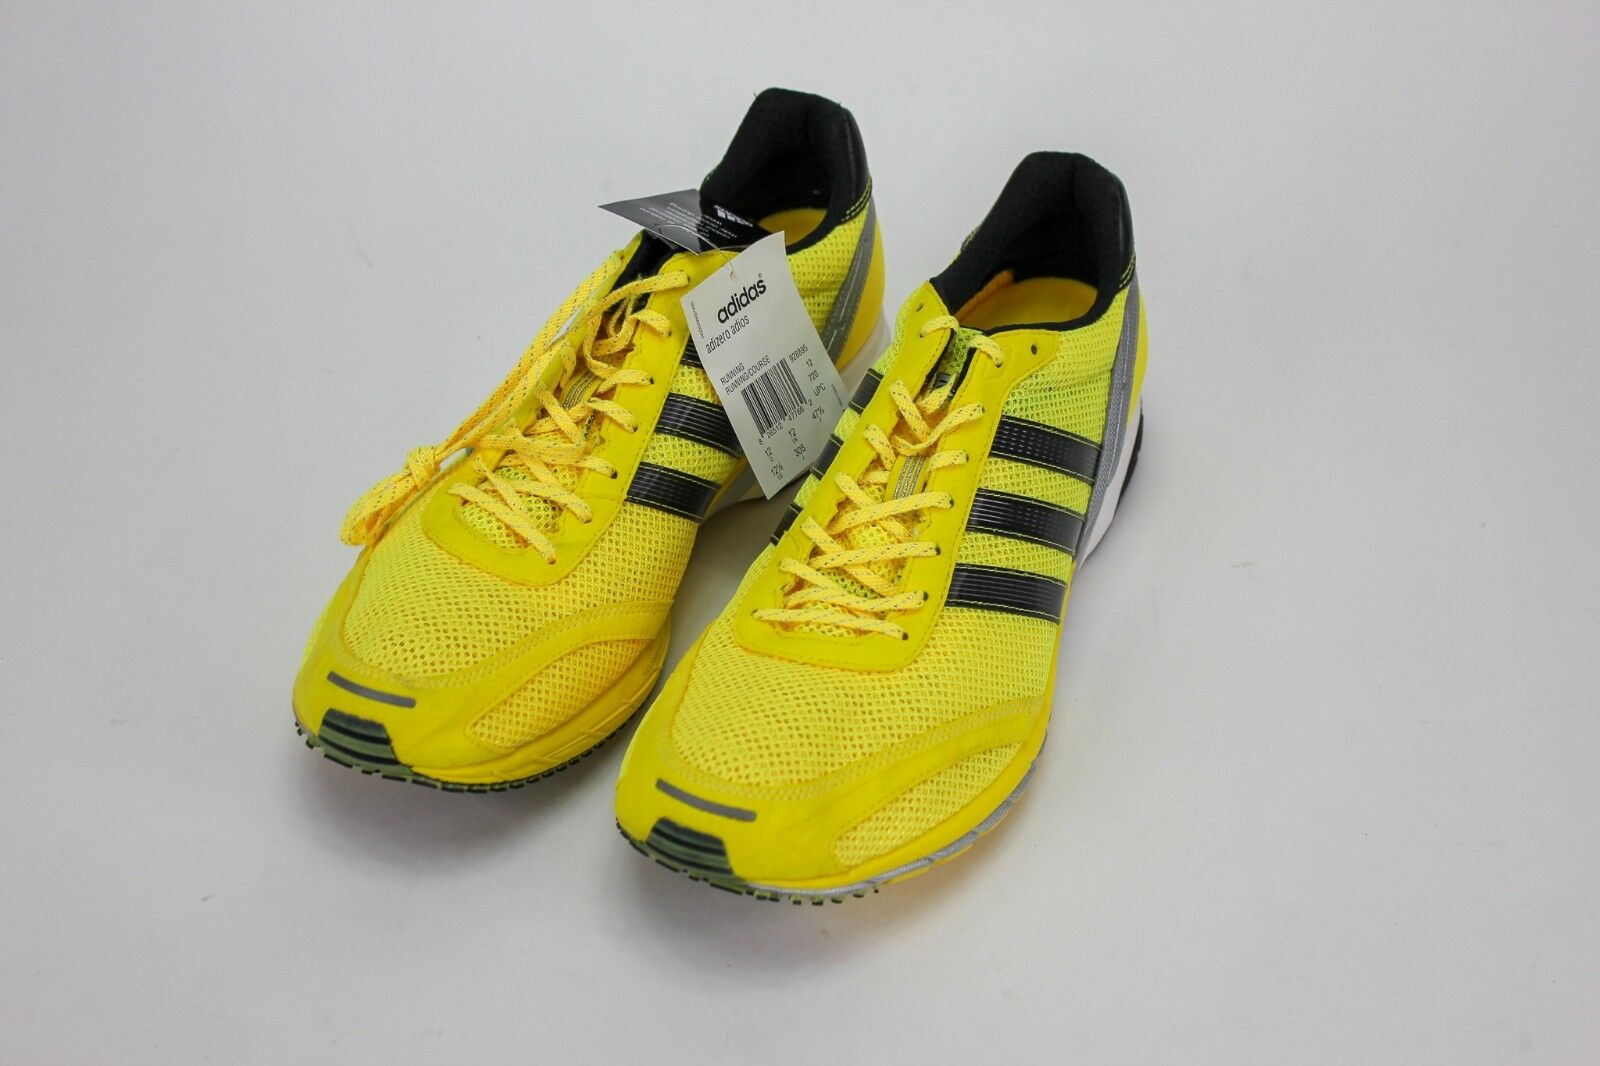 Adidas Adizero Adios 1 Haile Men's Sneakers Running Shoes Neon Yellow Size 12.5